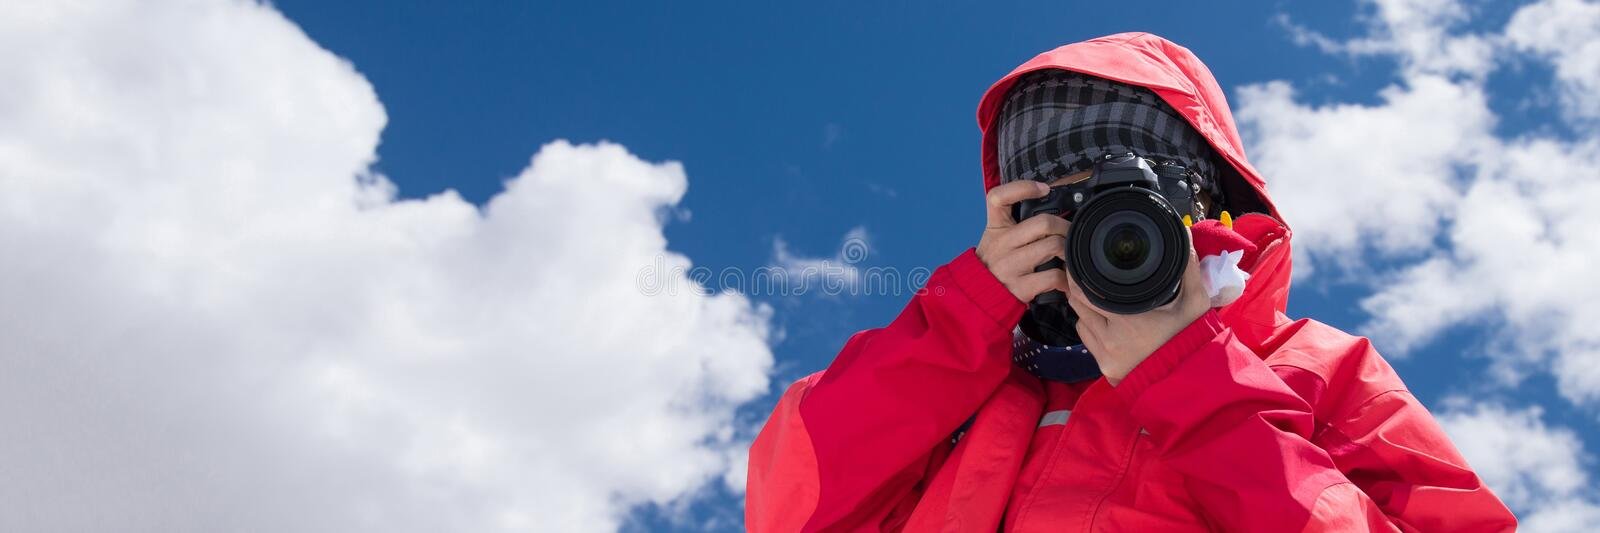 Attractive solo women traveller talking pictures outdoors with blue sky background royalty free stock photography